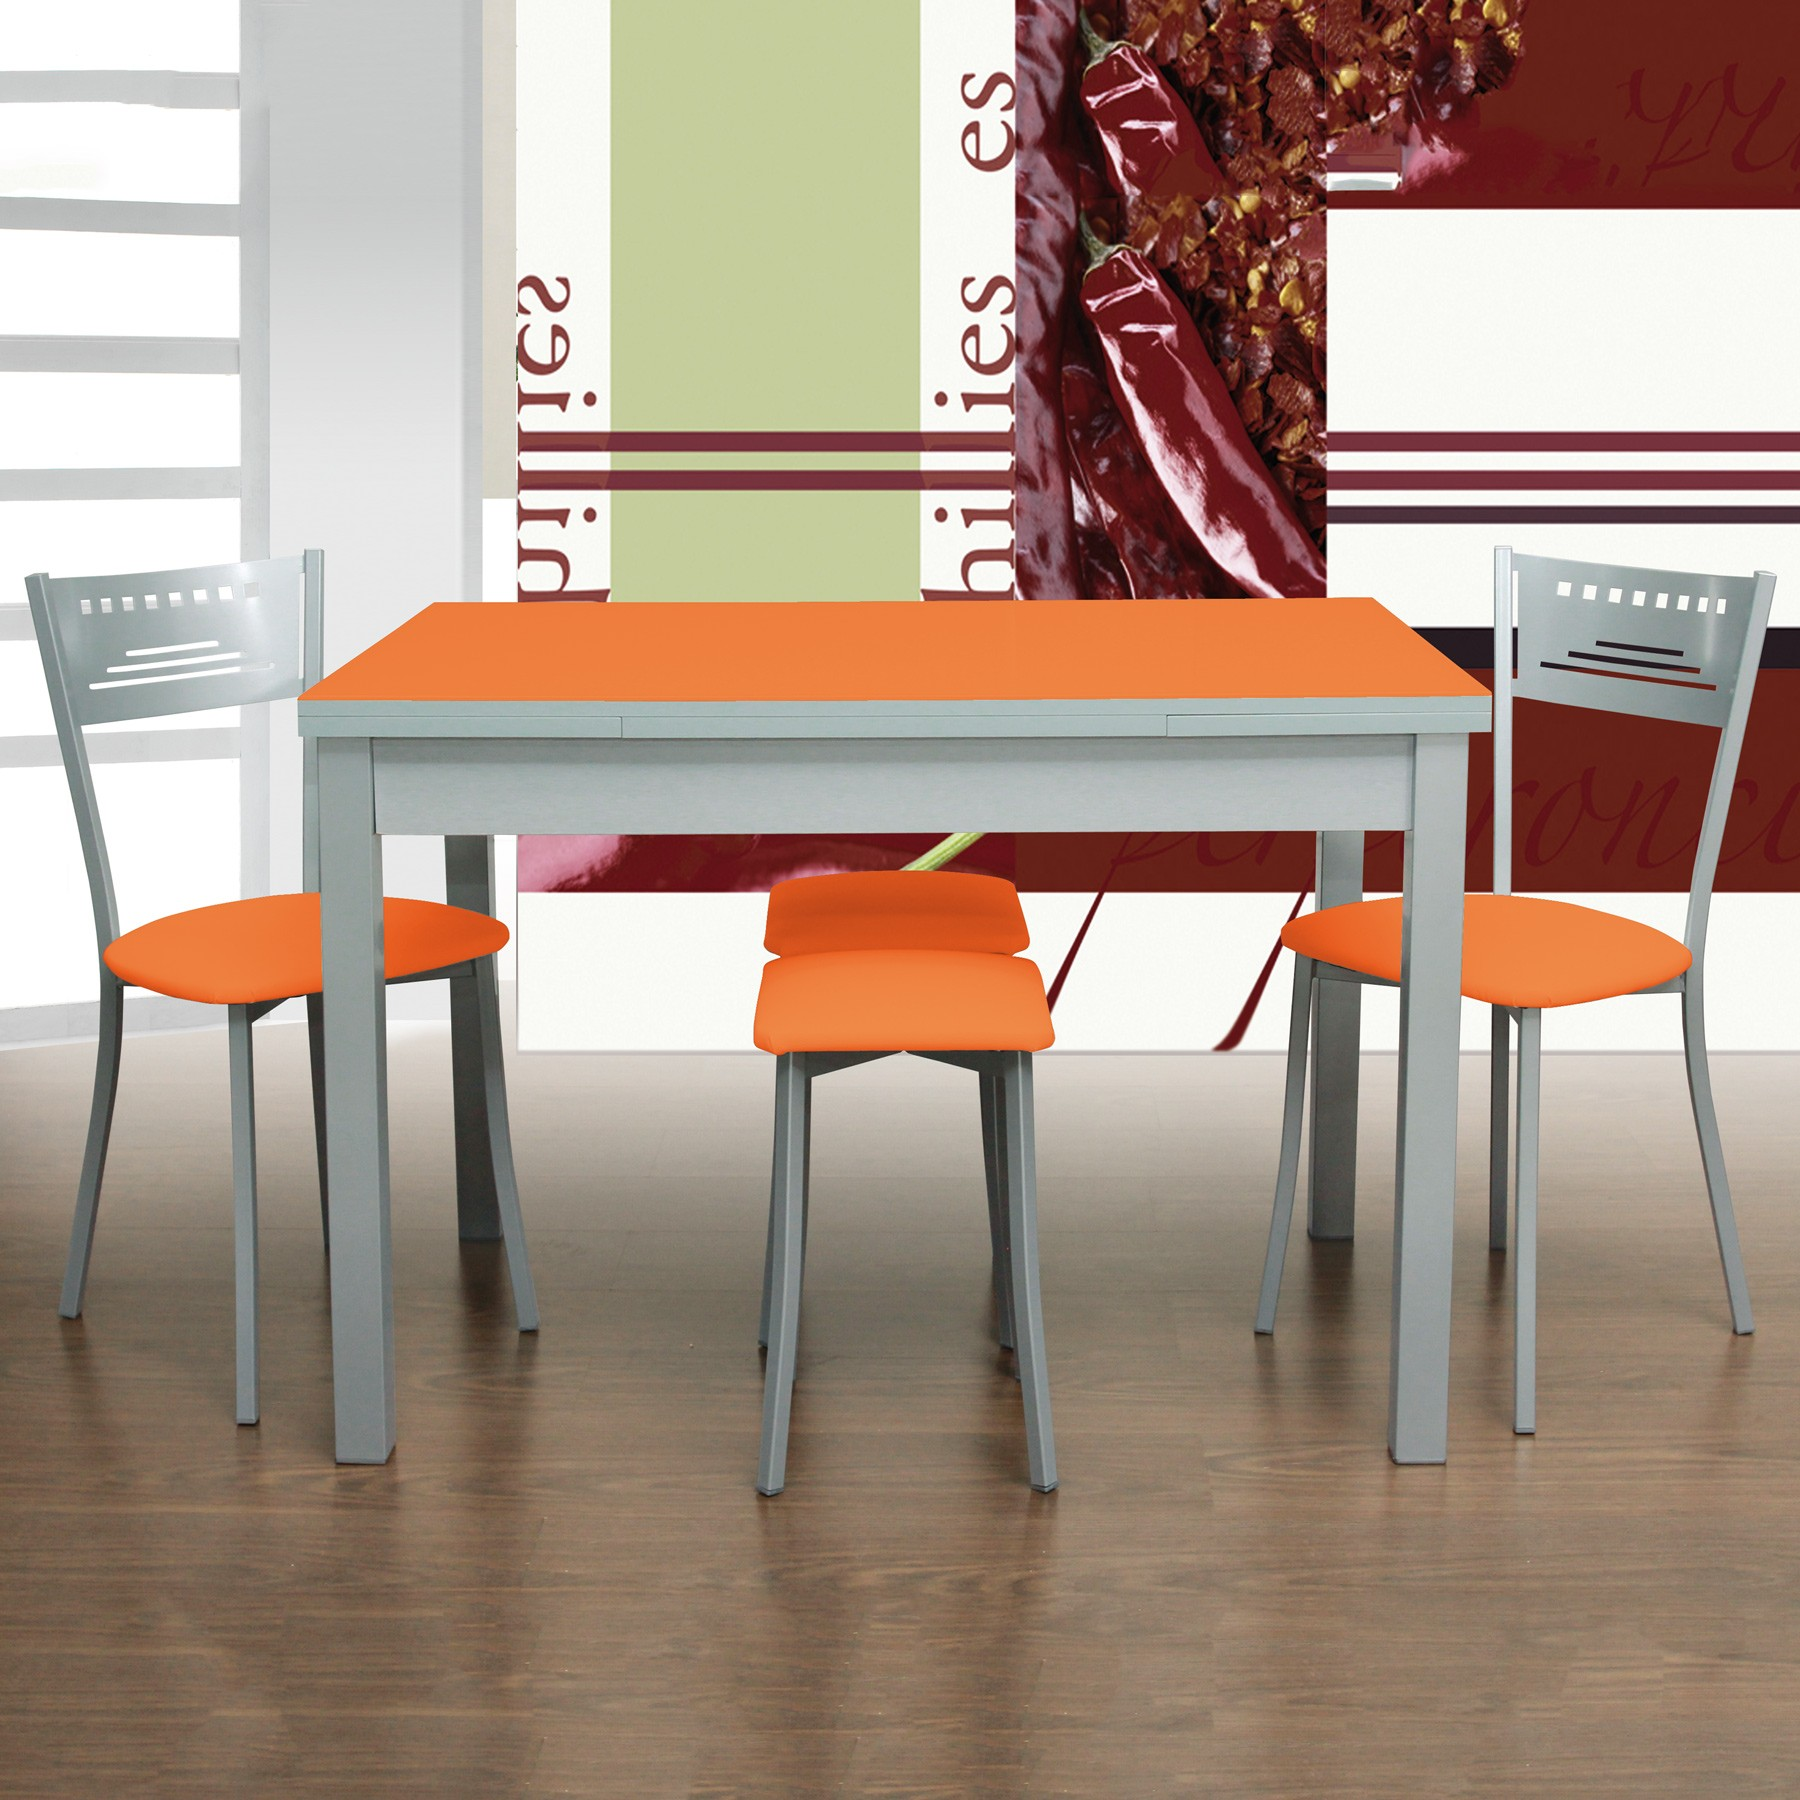 Pack mesa de cocina sillas y o taburetes mod orange for Ofertas en mesas y sillas